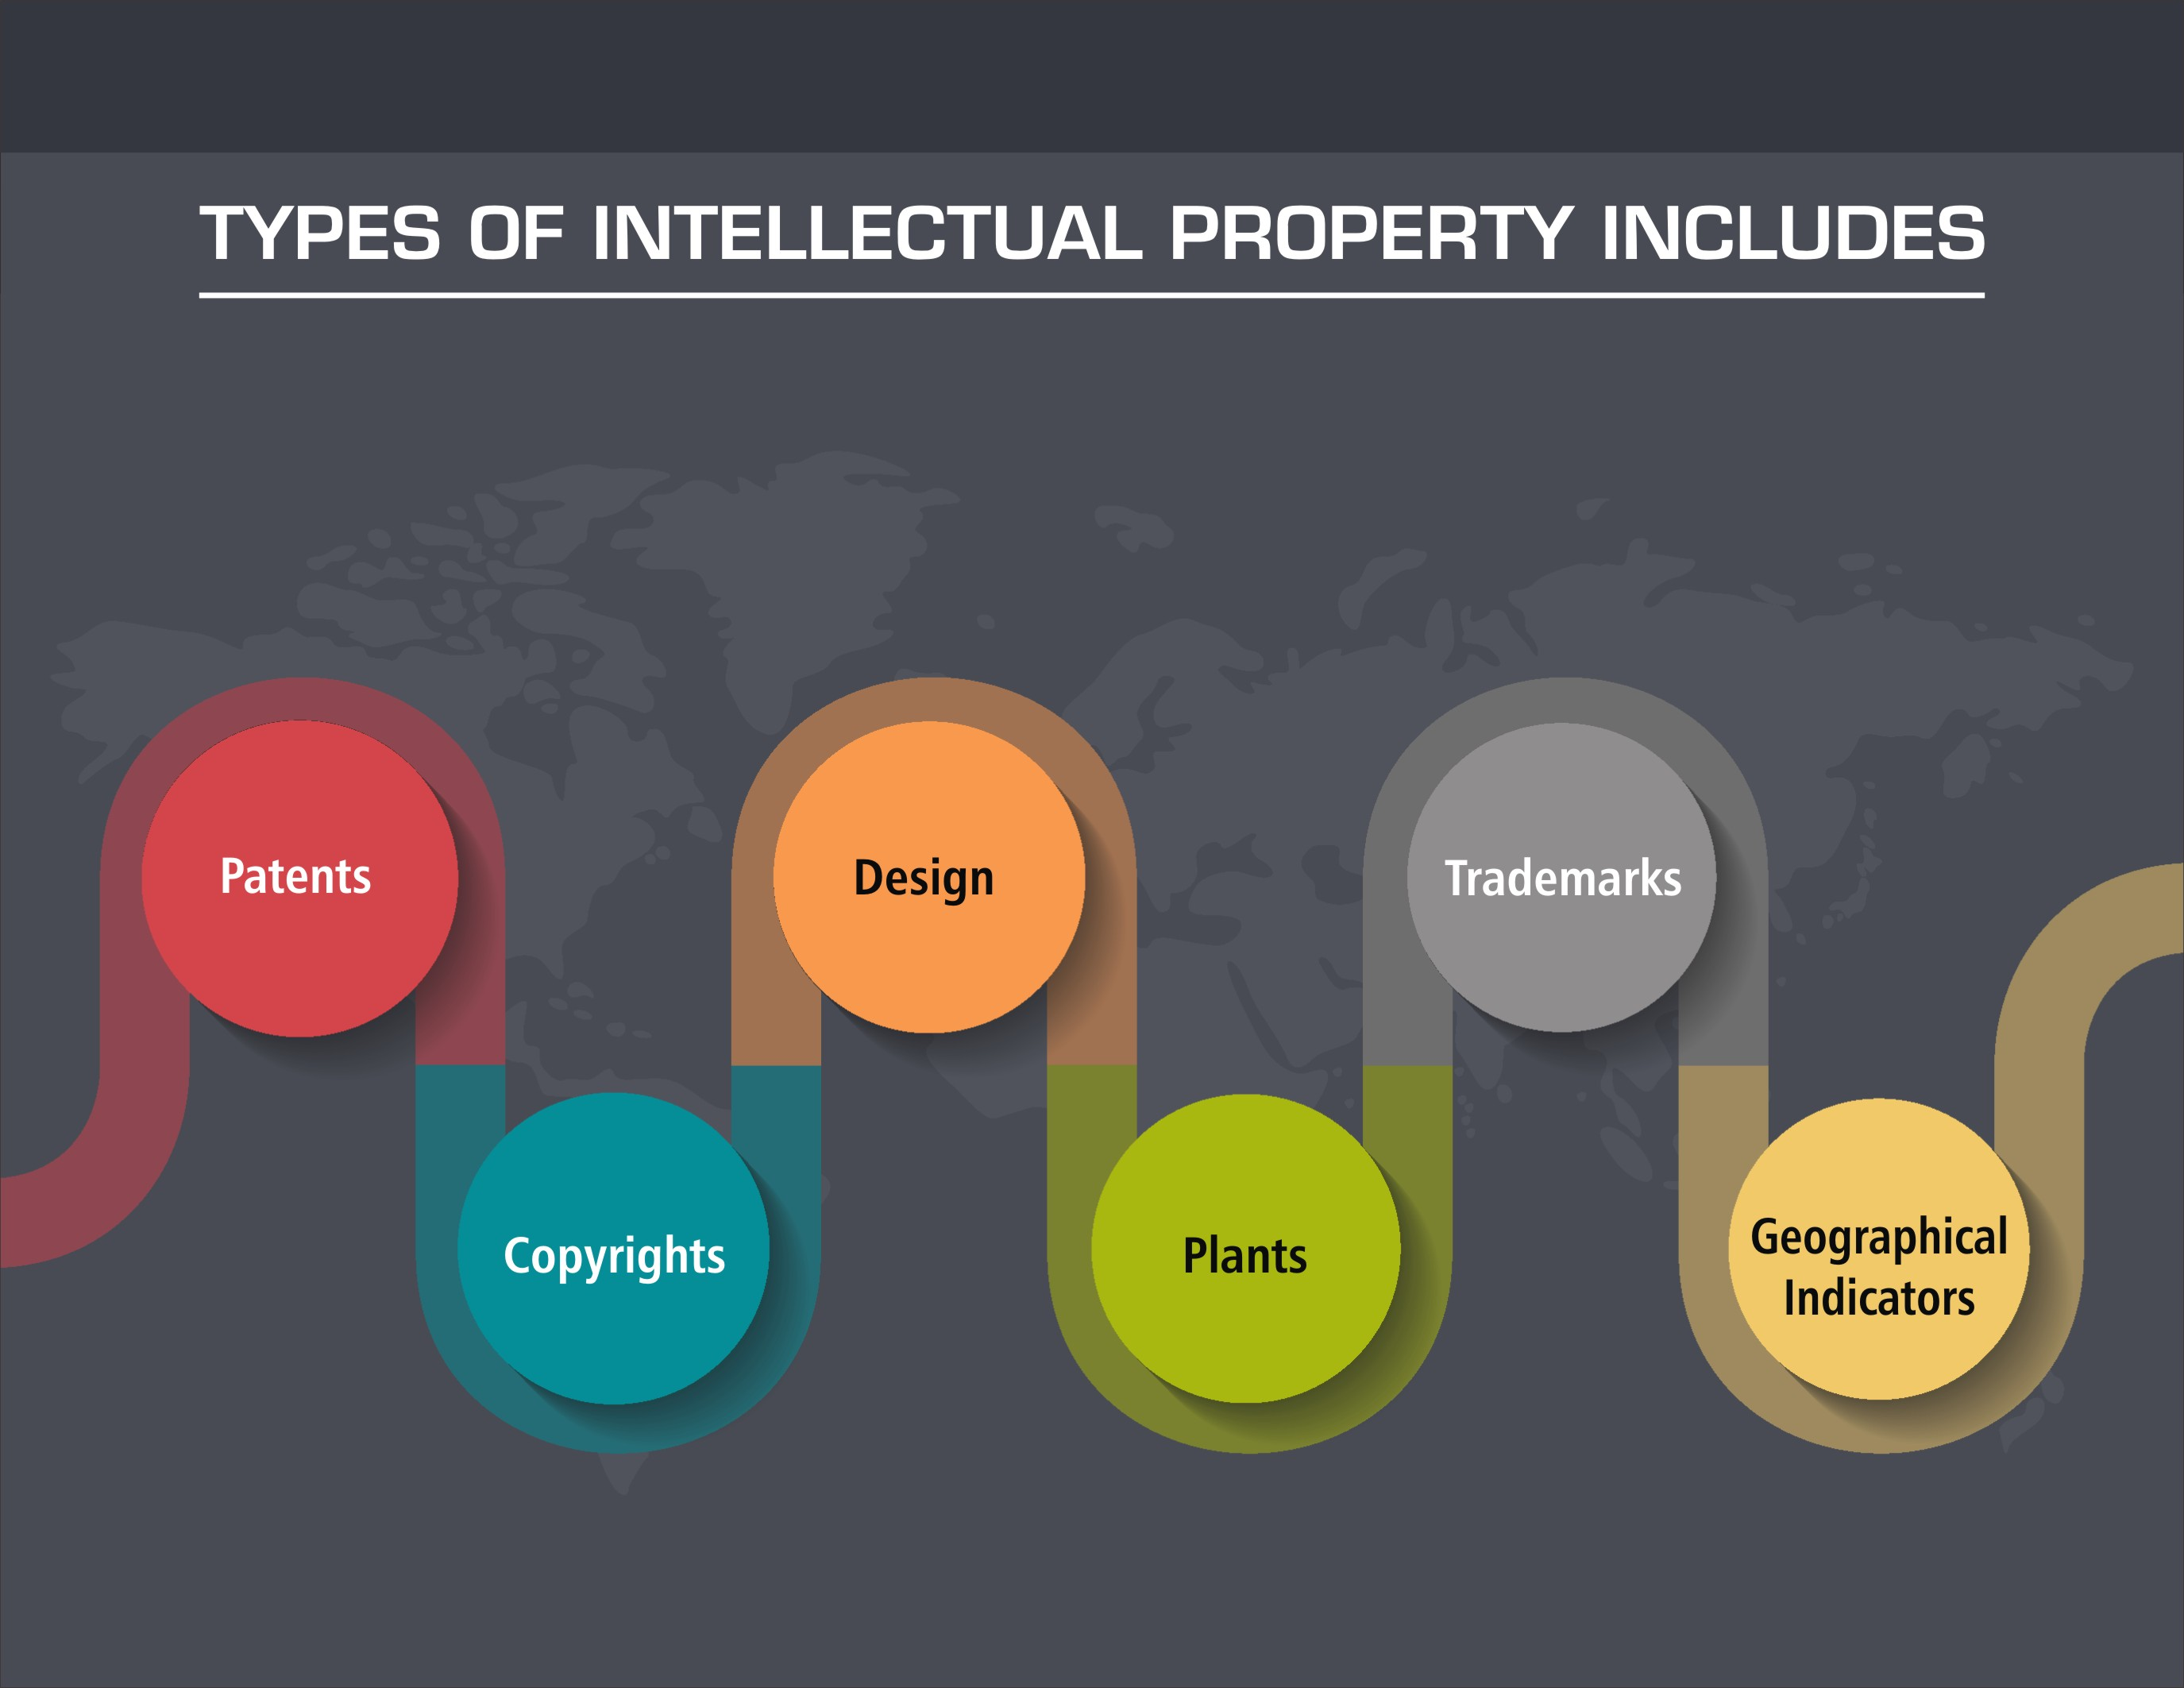 Types of Intellectual Property supported in IP Regime